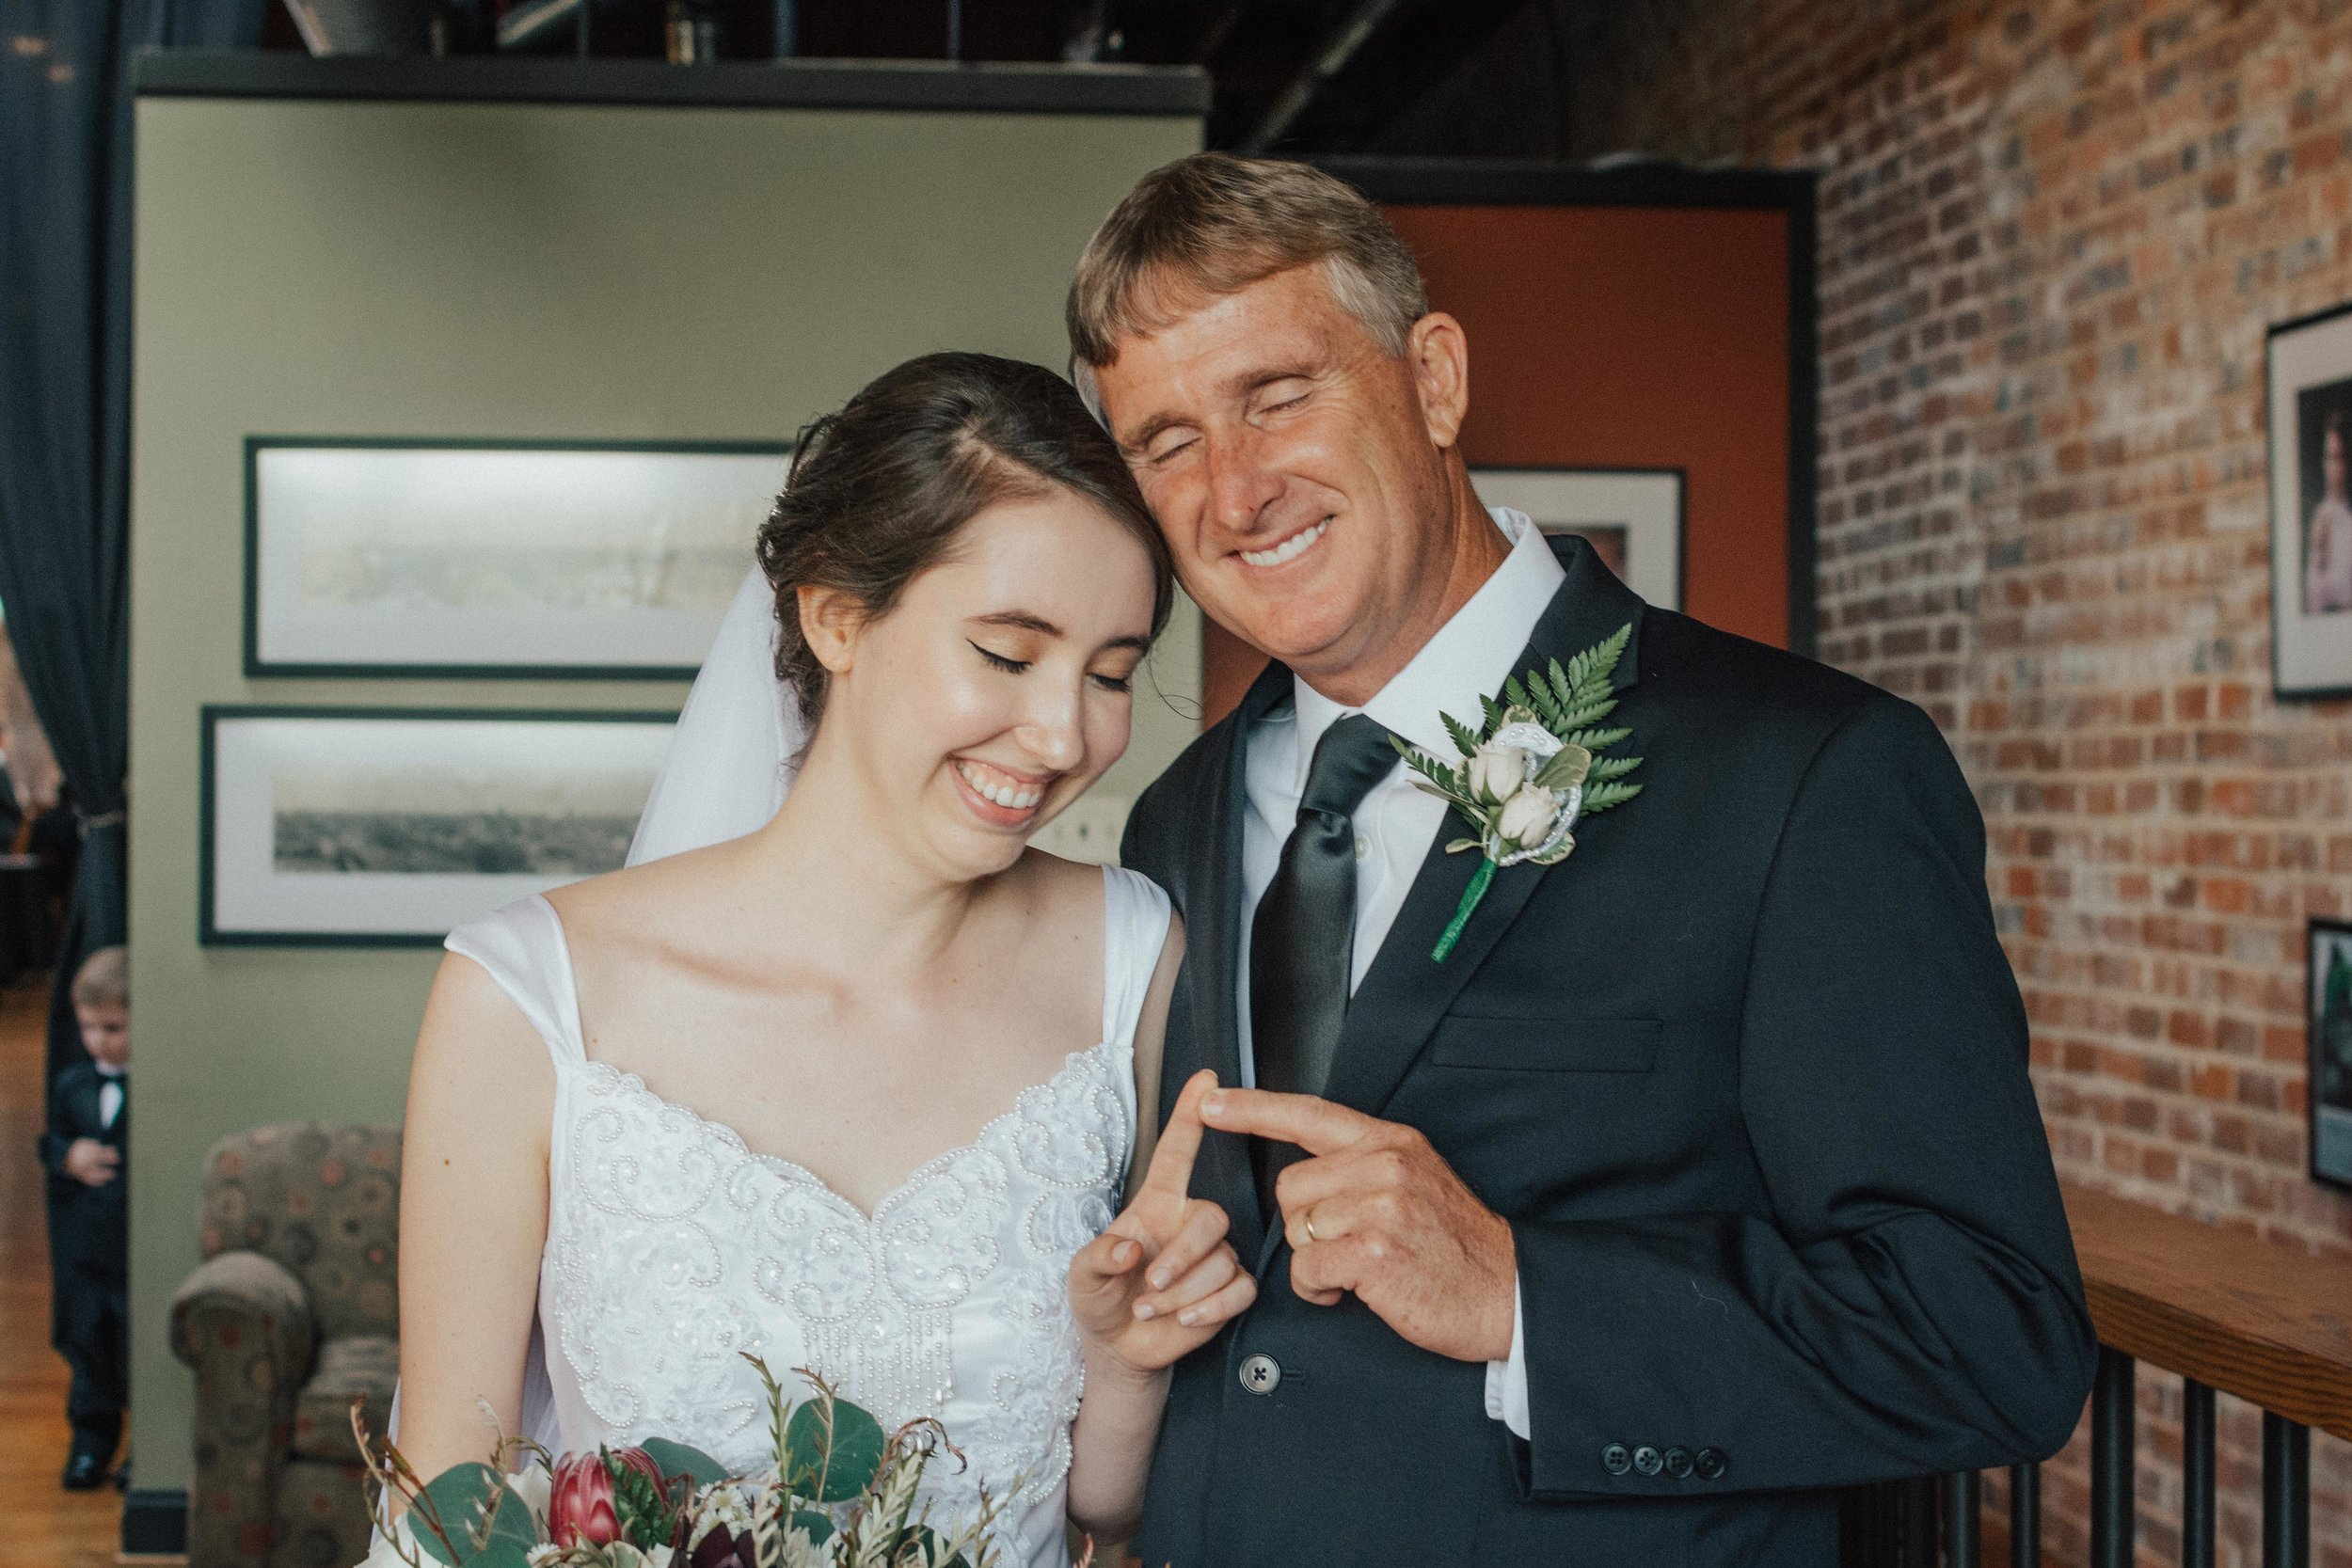 """Autumn and her father had this adorable little thing they did where they would touch fingertips as a kind of """"I love you"""" moment."""